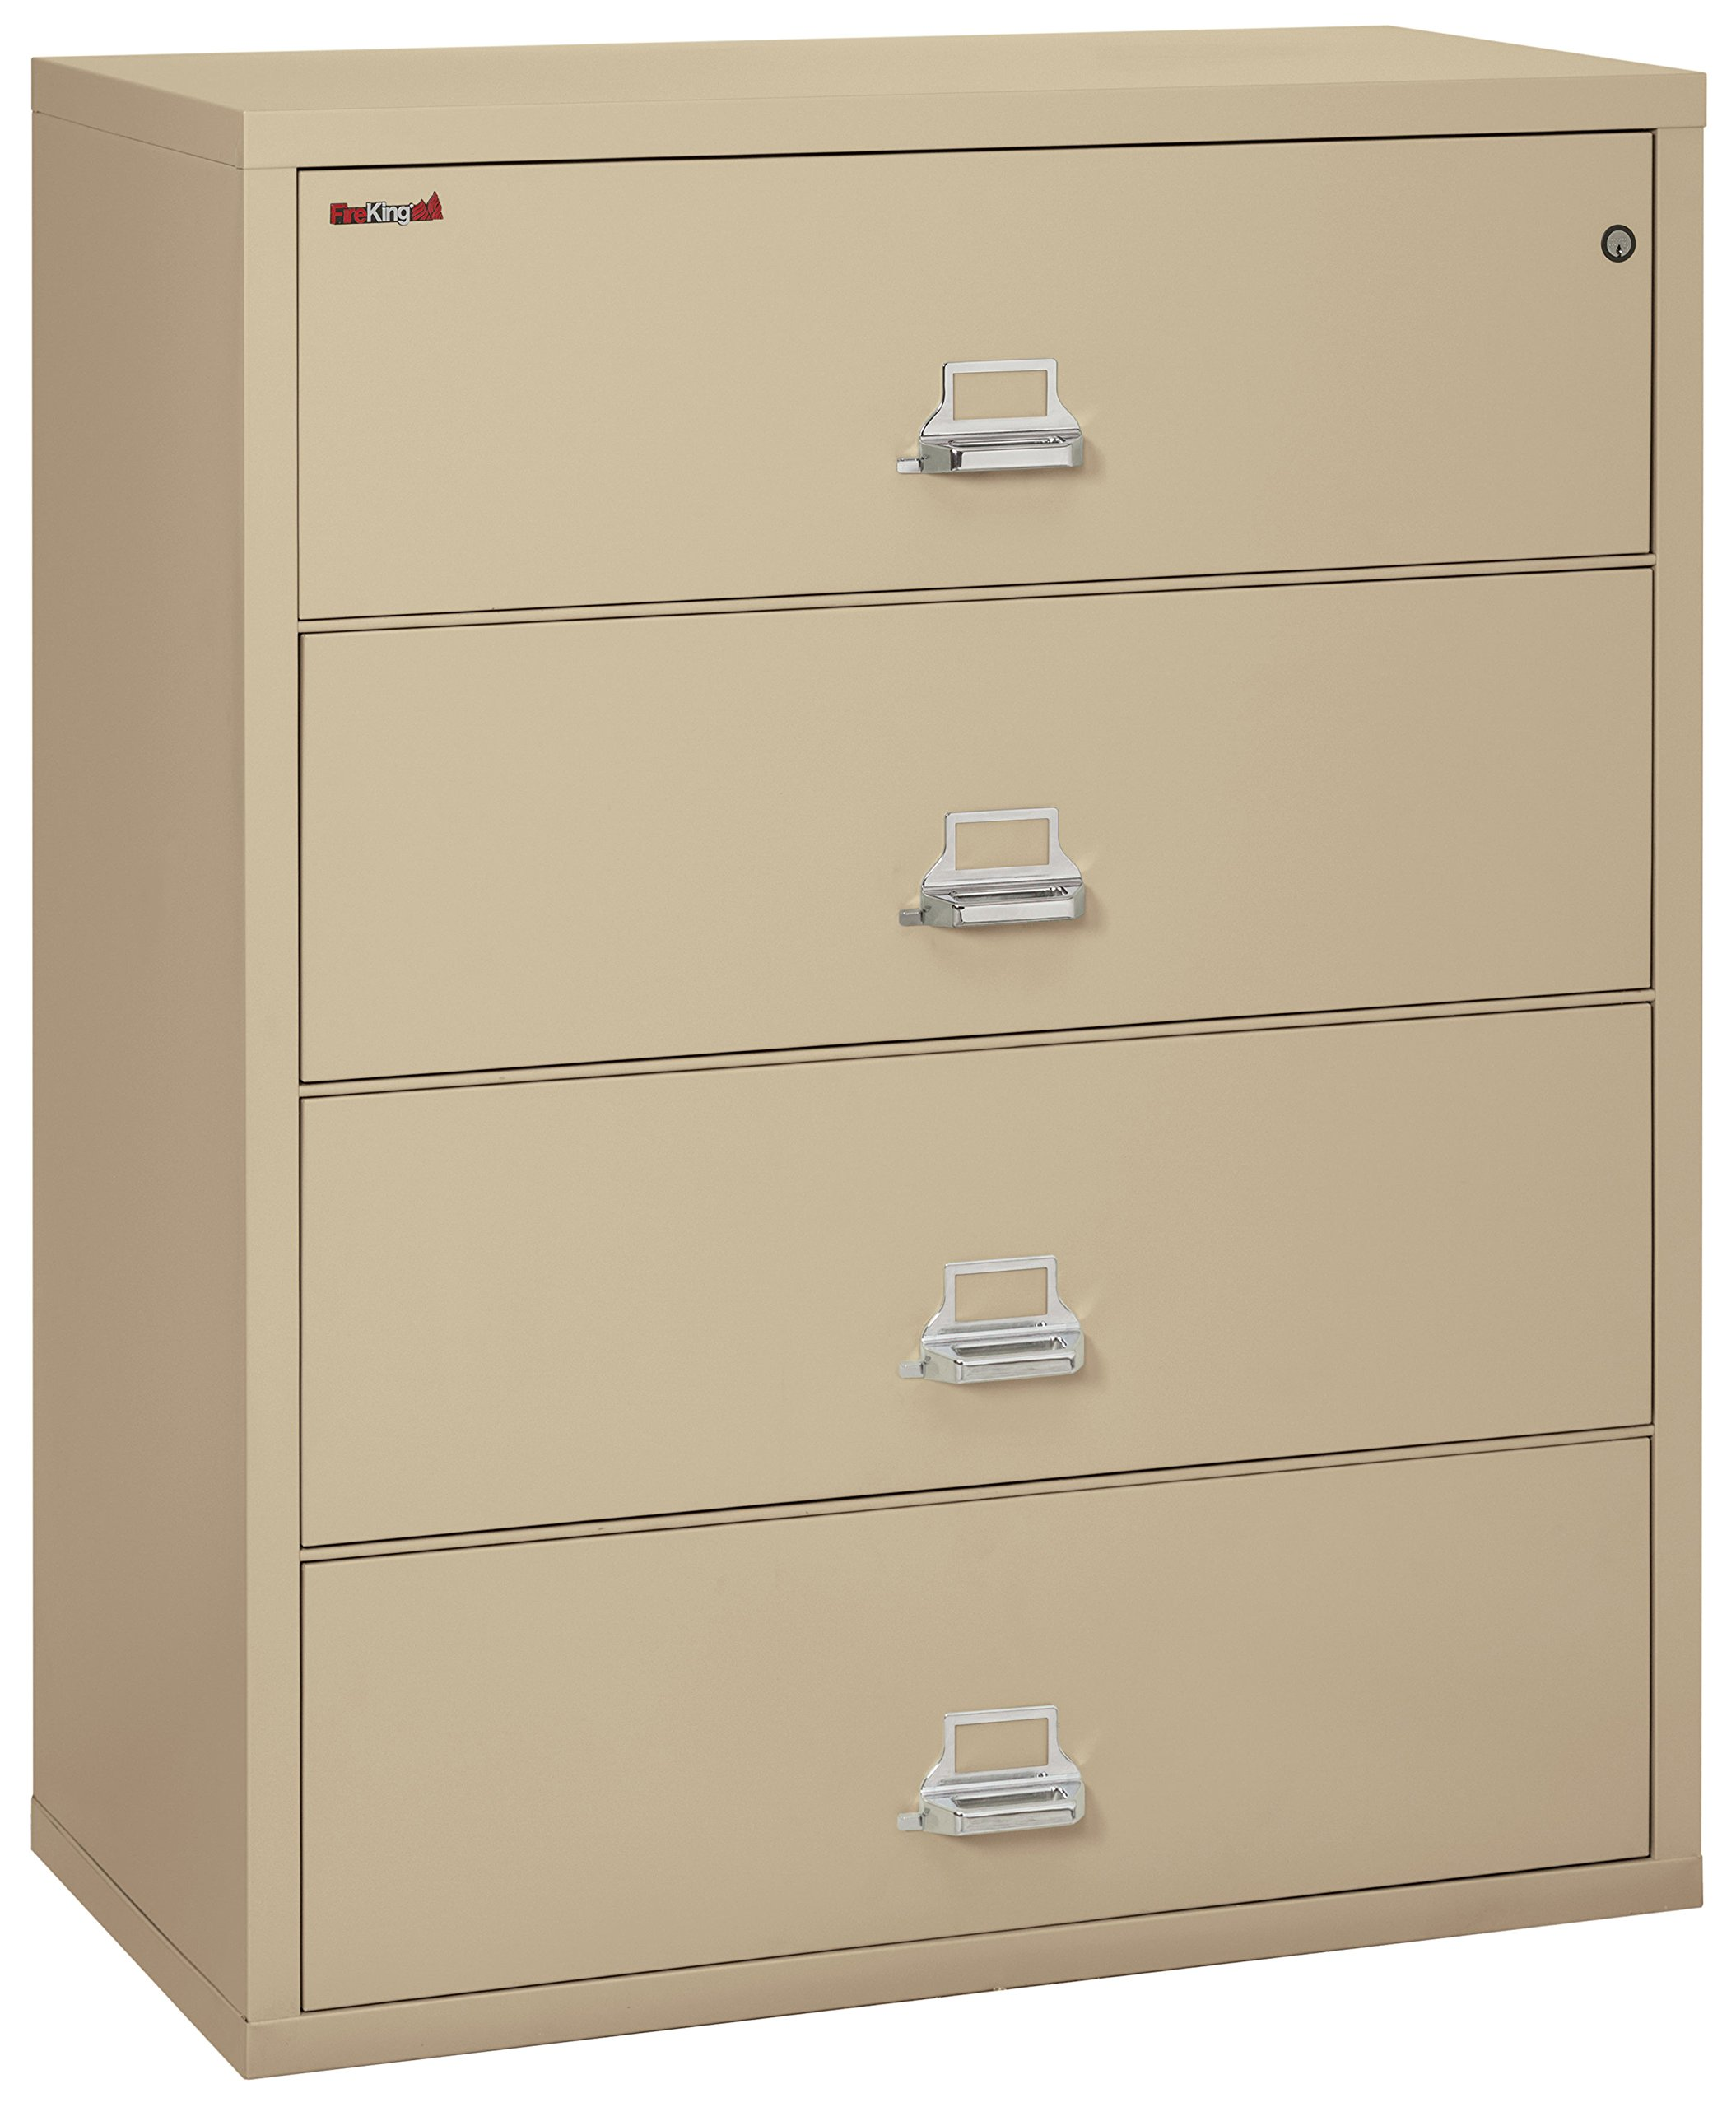 Fireking Fireproof Lateral File Cabinet (4 Drawers, Impact Resistant, Water Resistant), 44'' W x 22'' D, Parchment, Made in USA by Fireking